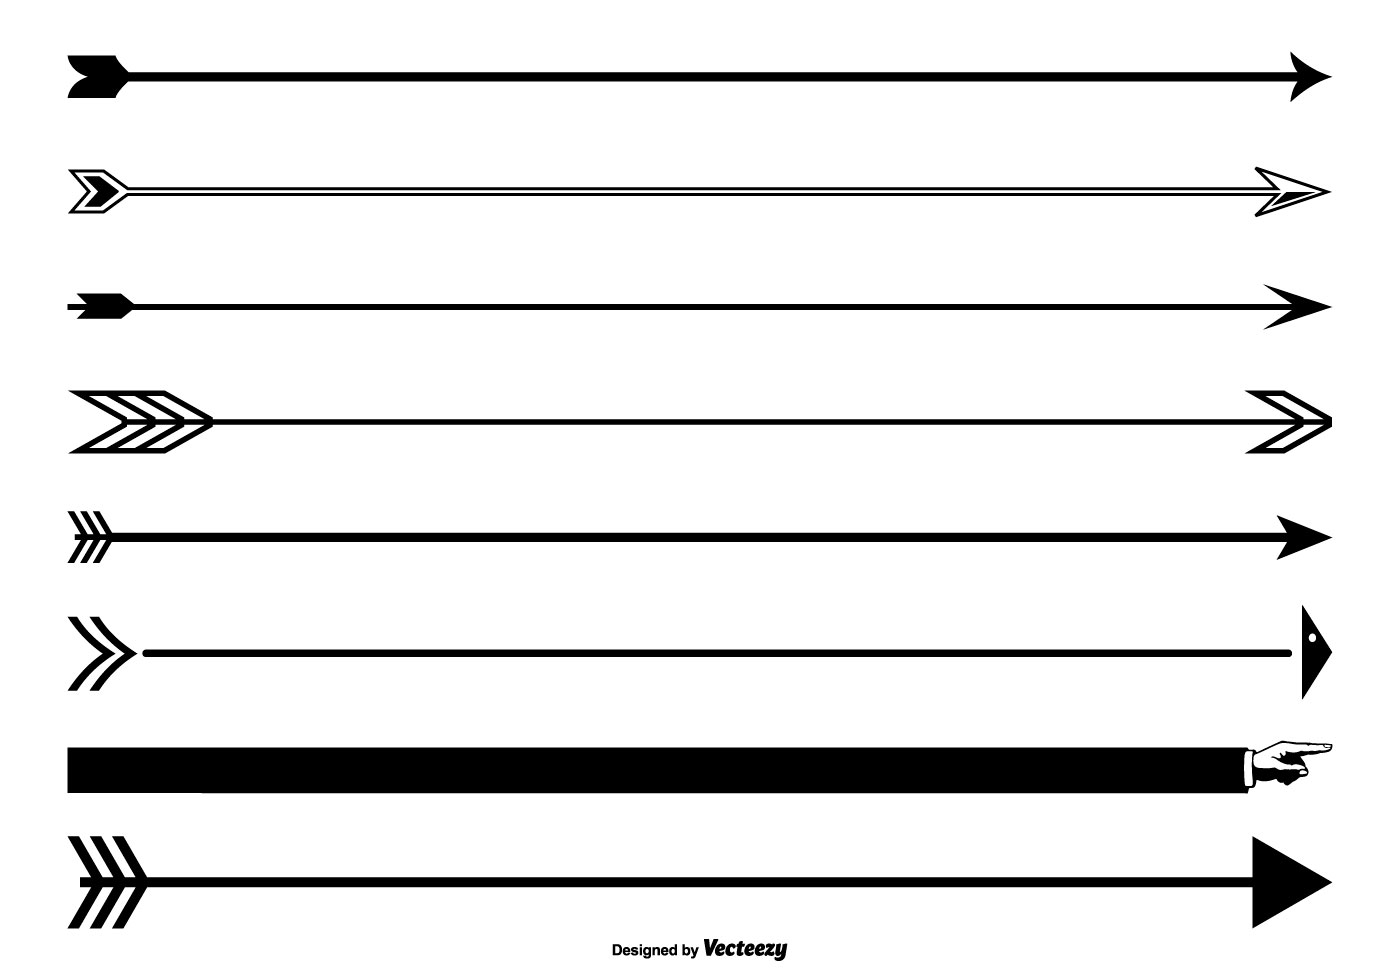 page divider free vector art 2870 free downloads